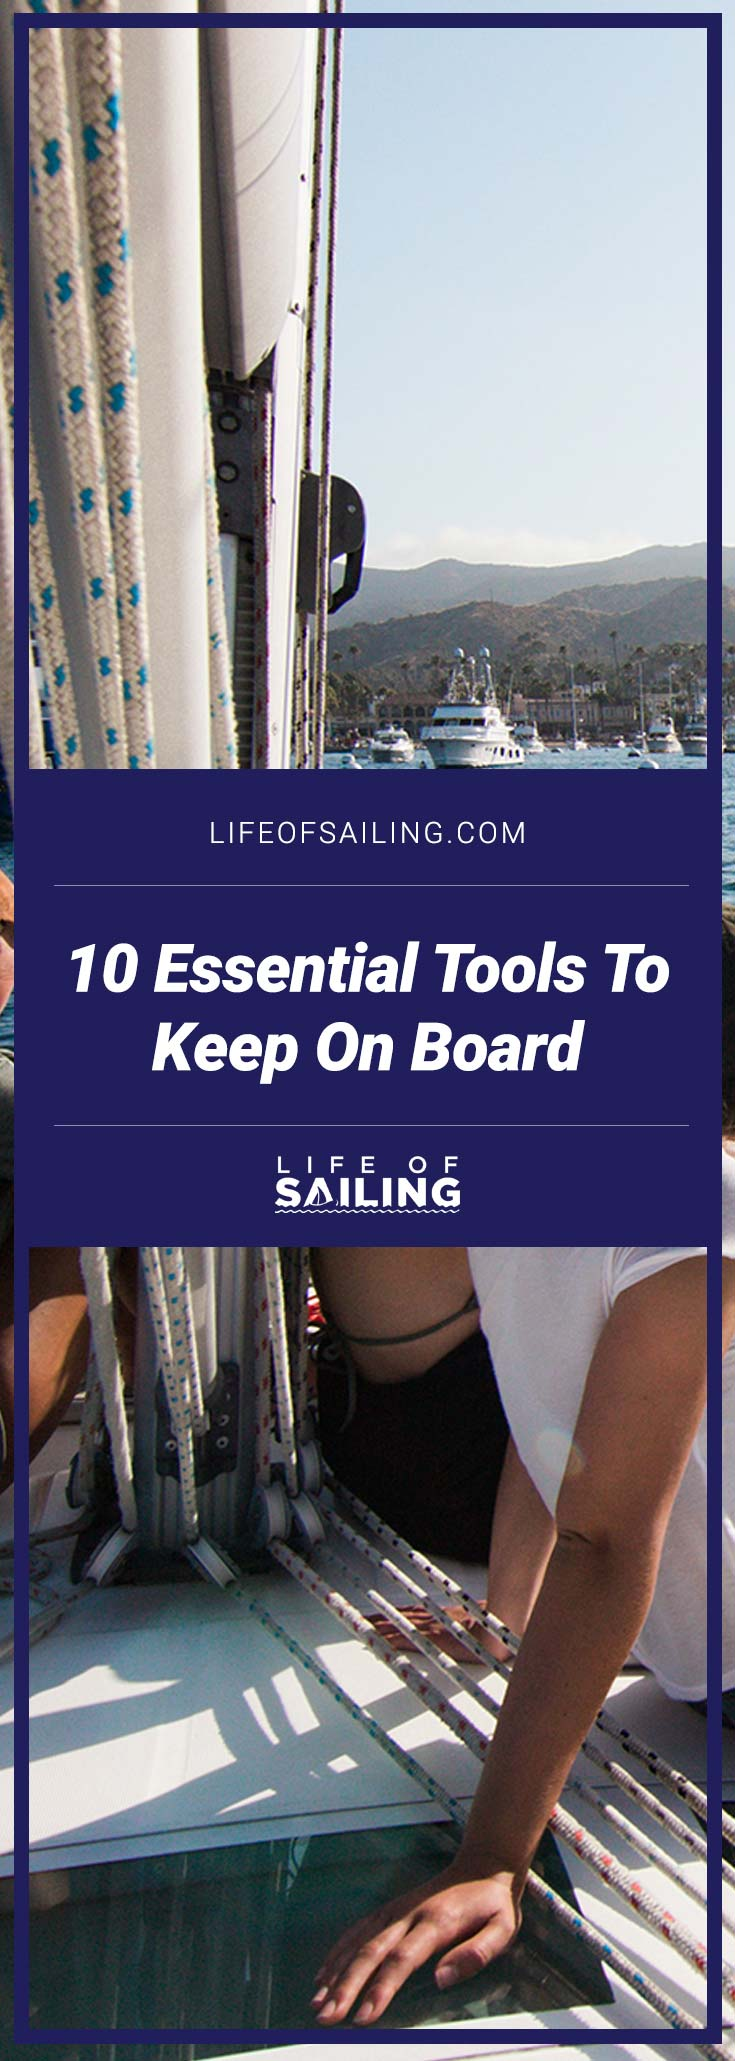 10 Essential Tools to Keep on Board Your Sailboat